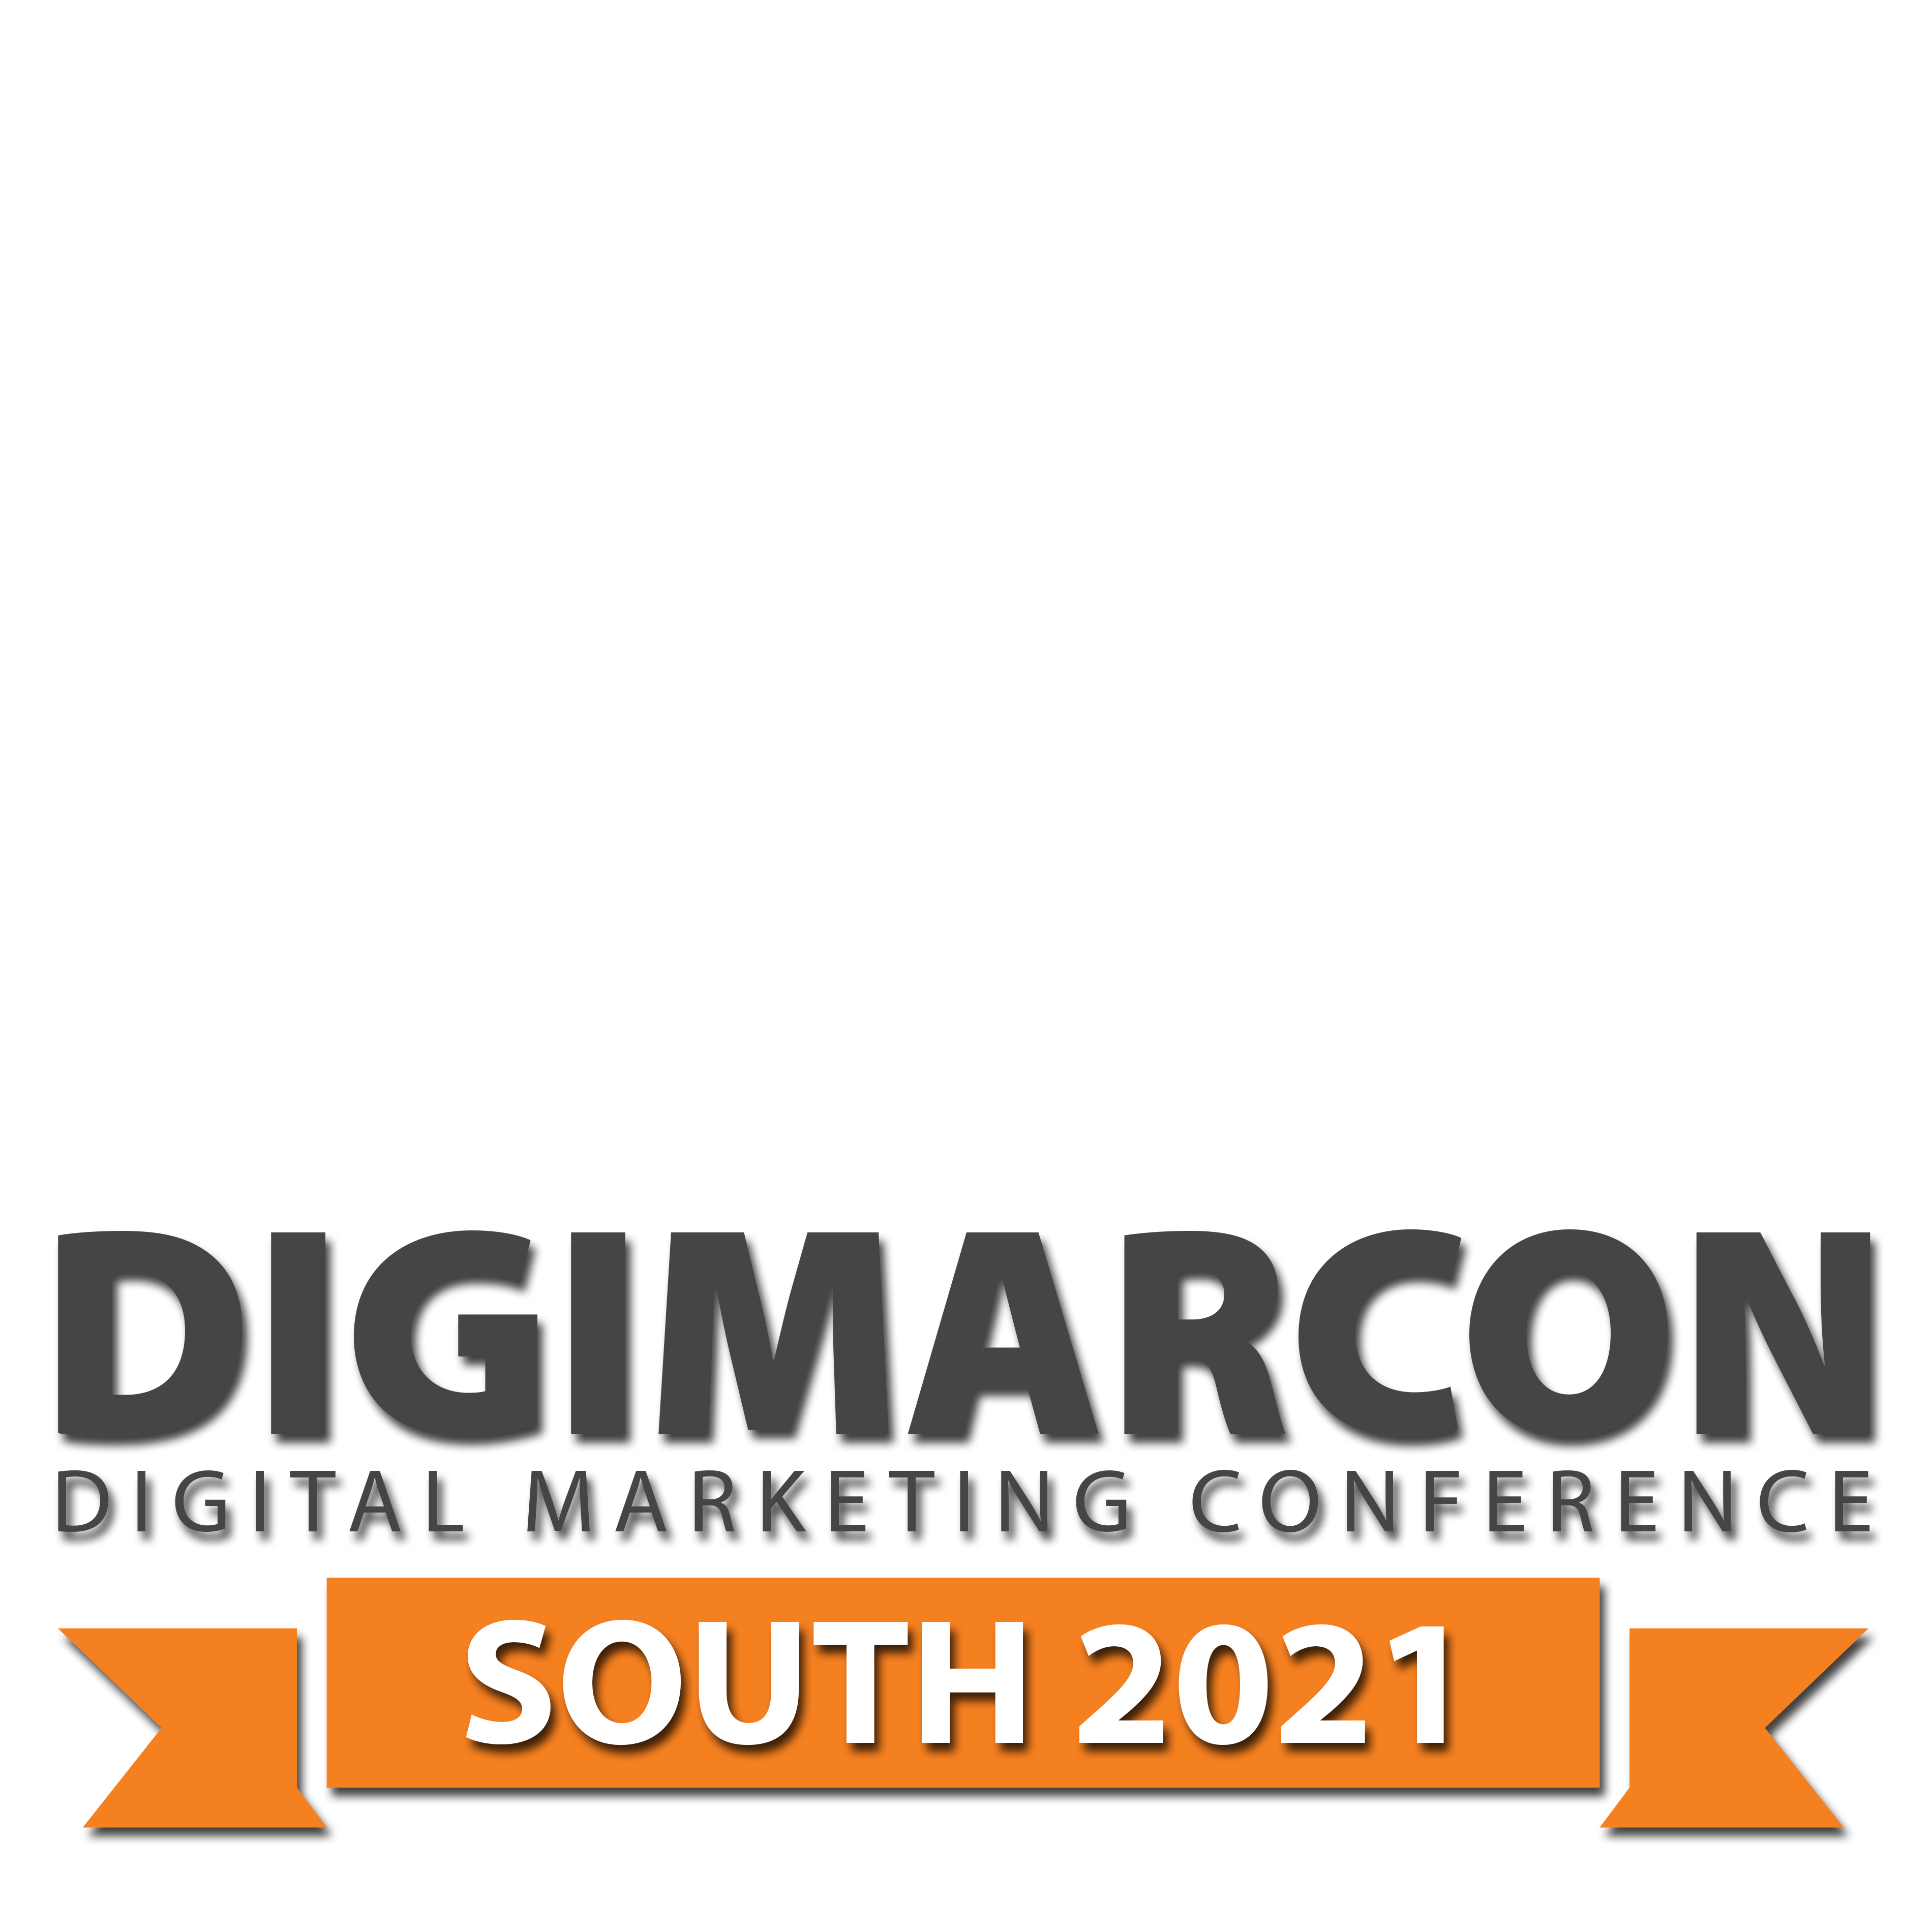 DigiMarCon North Africa 2022 – Digital Marketing Conference & Exhibition